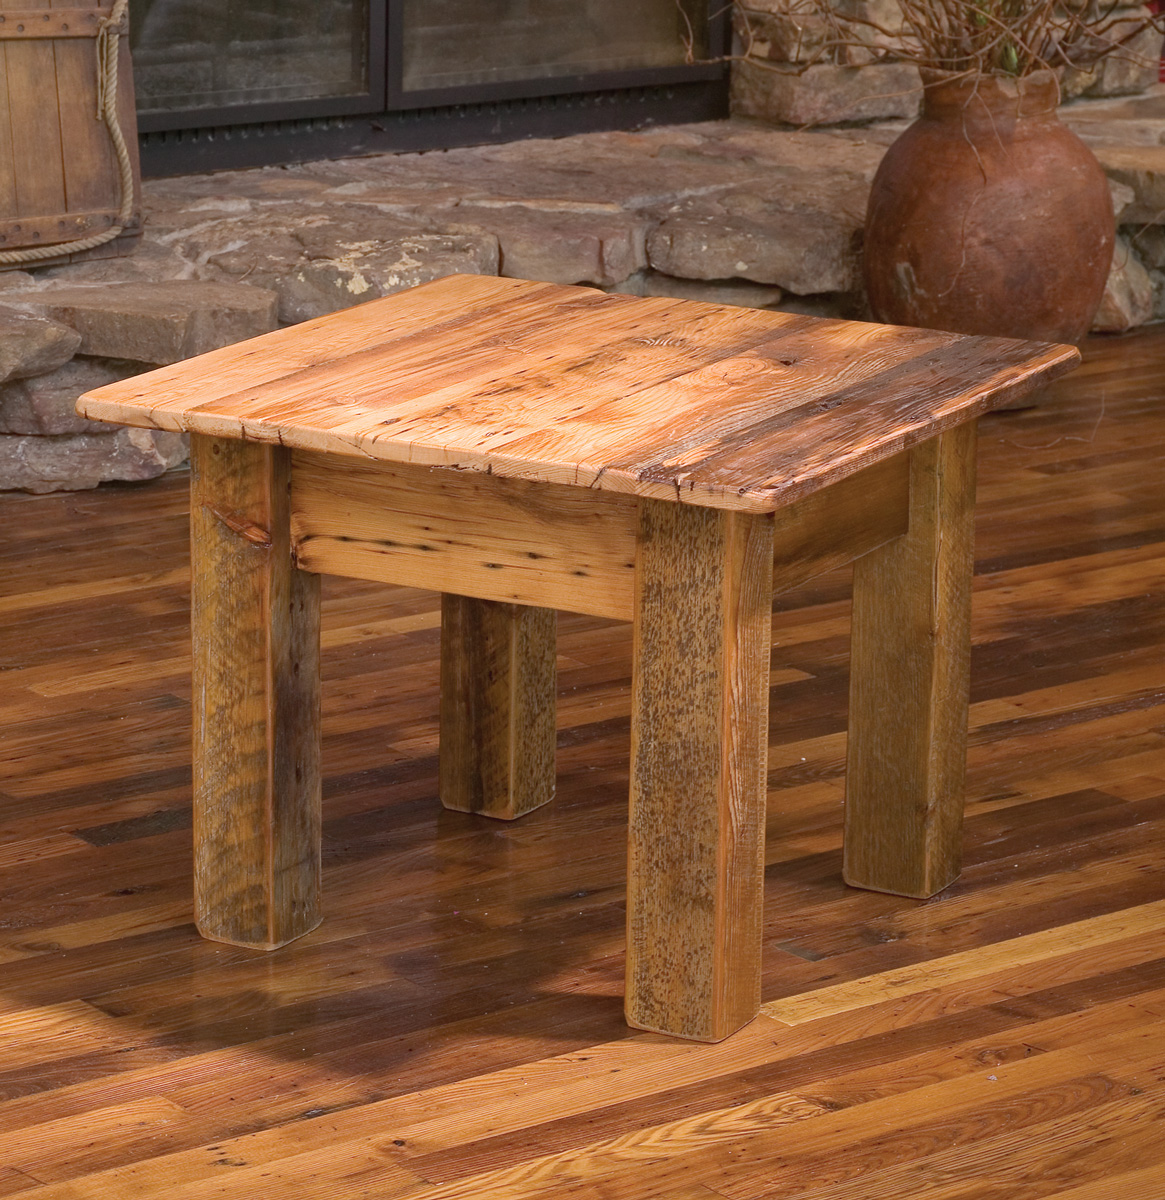 Reclaimed barn wood furniture at the galleria Wooden furniture pics